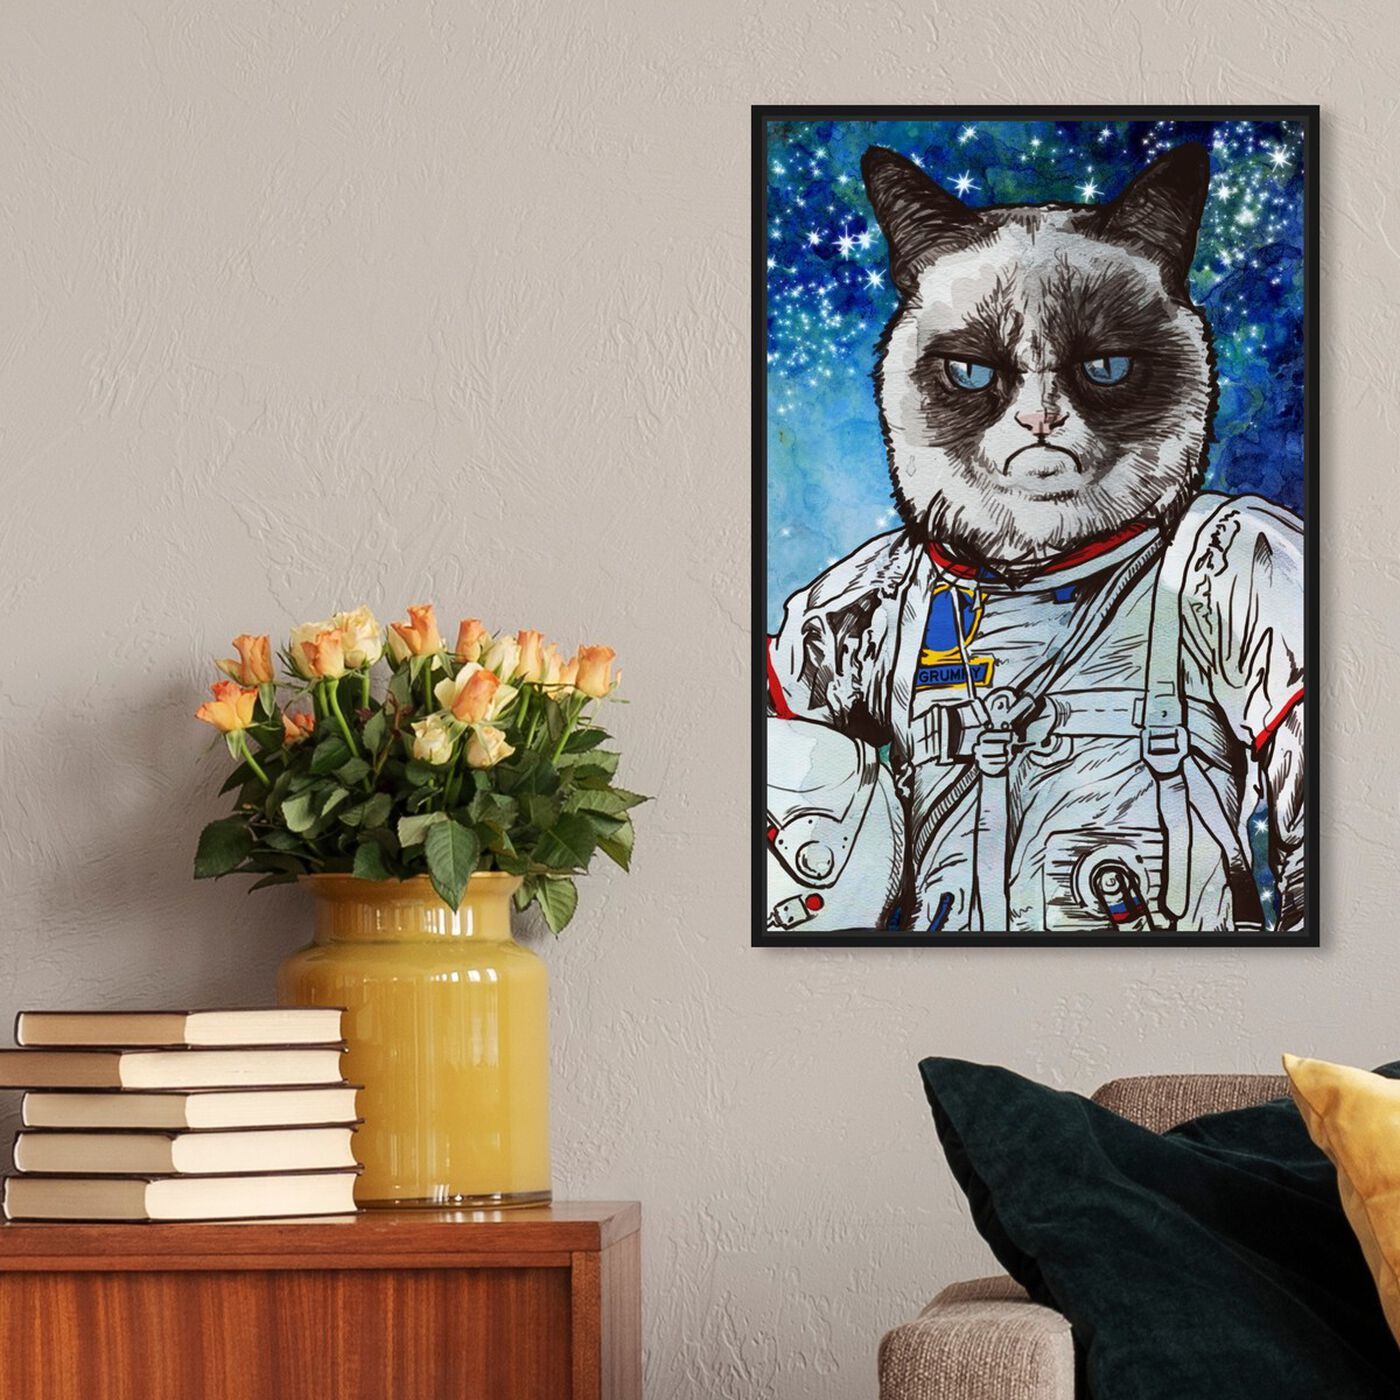 Hanging view of Captain Grumpy featuring animals and cats and kitties art.